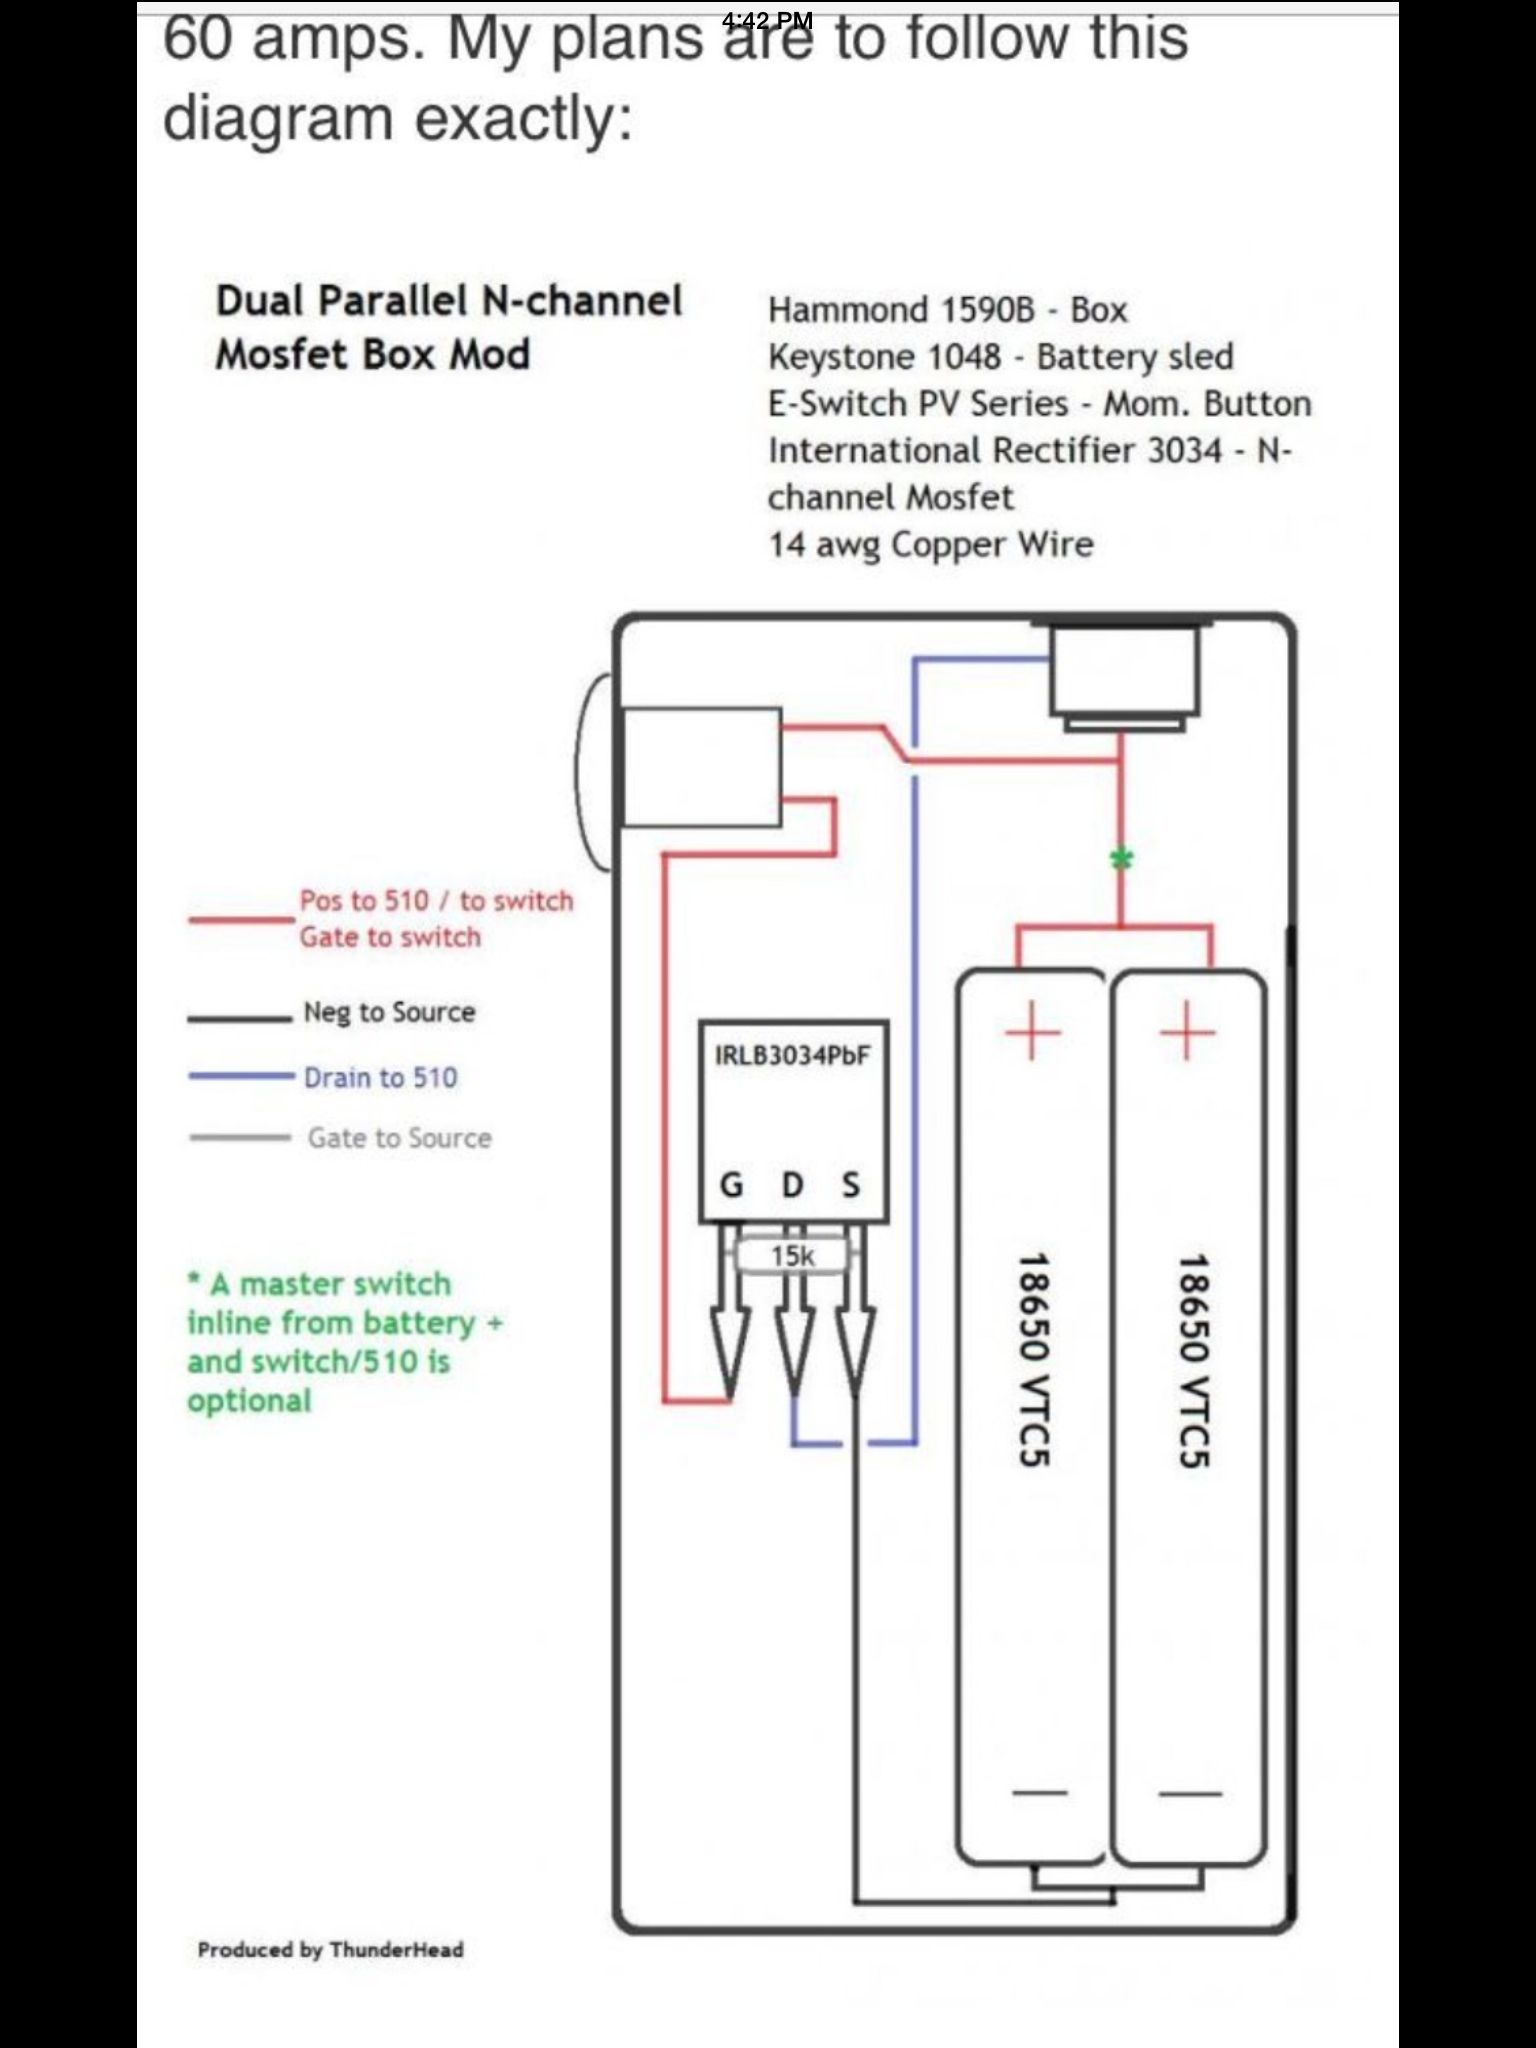 vape box mod fuse placement wiring diagram technicfuses box mod vape wiring schematic diagram 8 insuranceblog [ 1536 x 2048 Pixel ]